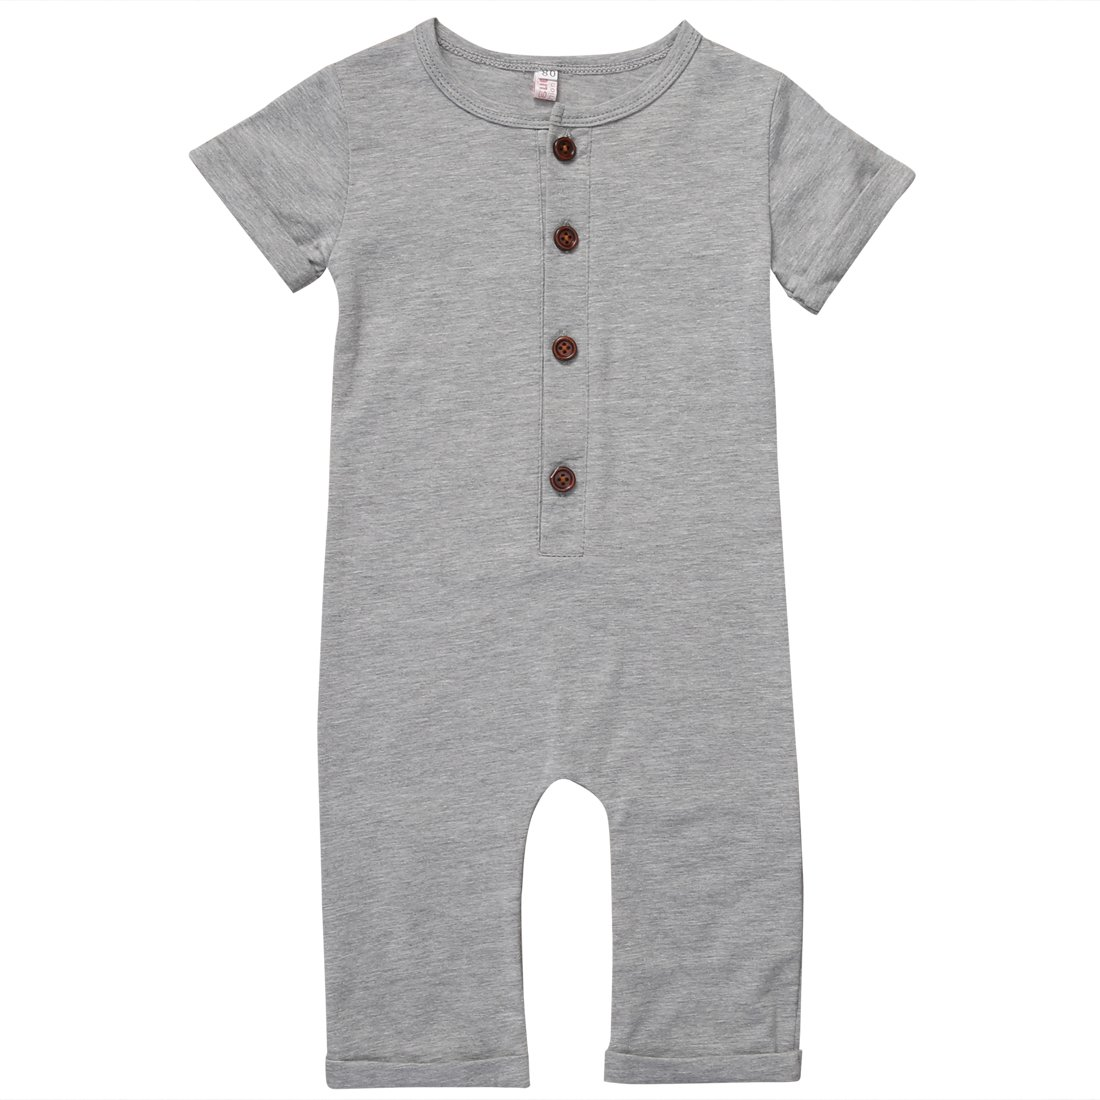 Gaono Infant Boys Black/Grey Button Up Romper Short Sleeve Basic Romper Coveralls